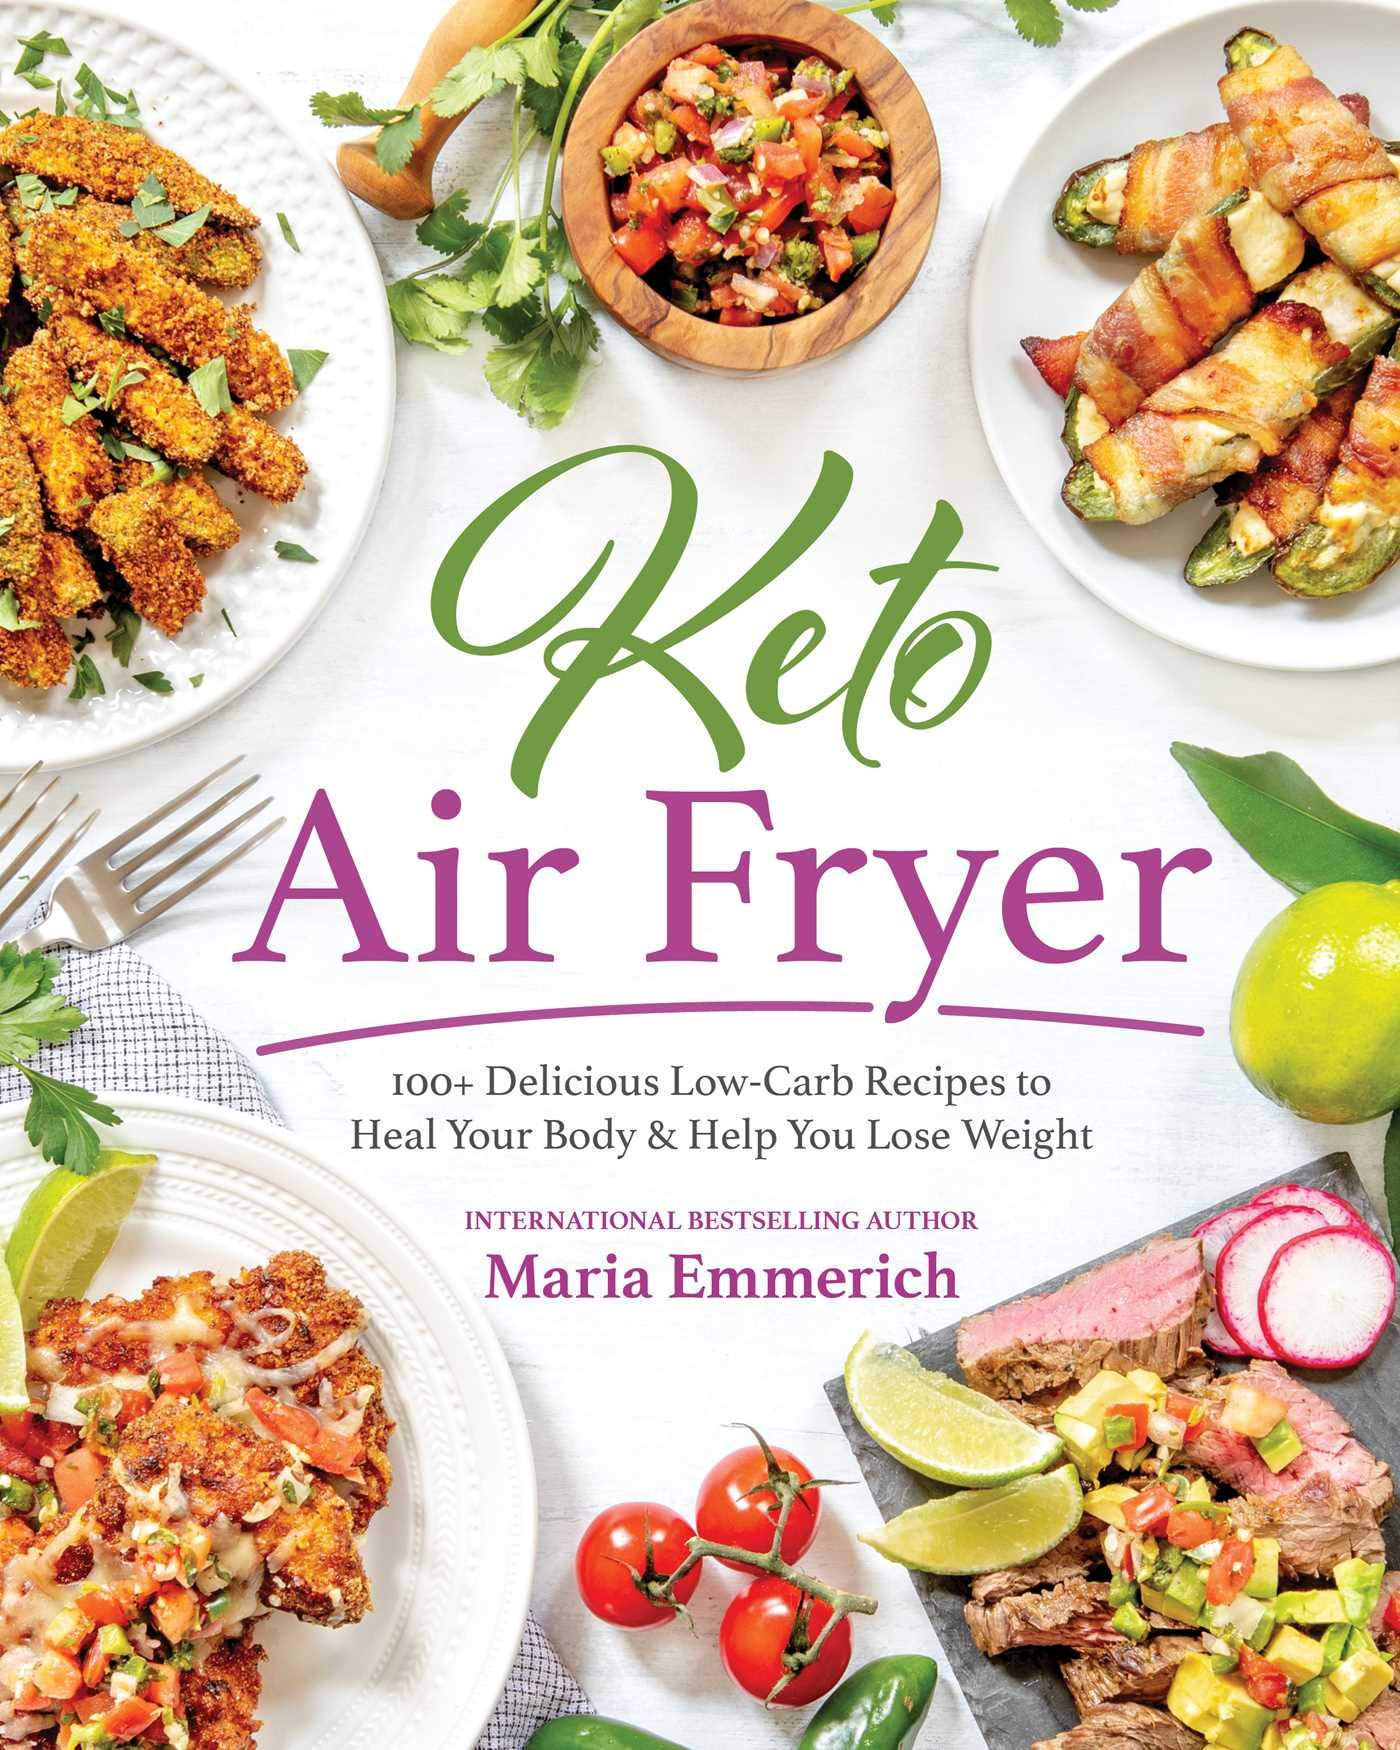 Keto Air Fryer: 100+ Delicious Low-Carb Recipes to Heal Your Body & Help You Lose Weight by Victory Belt Publishing